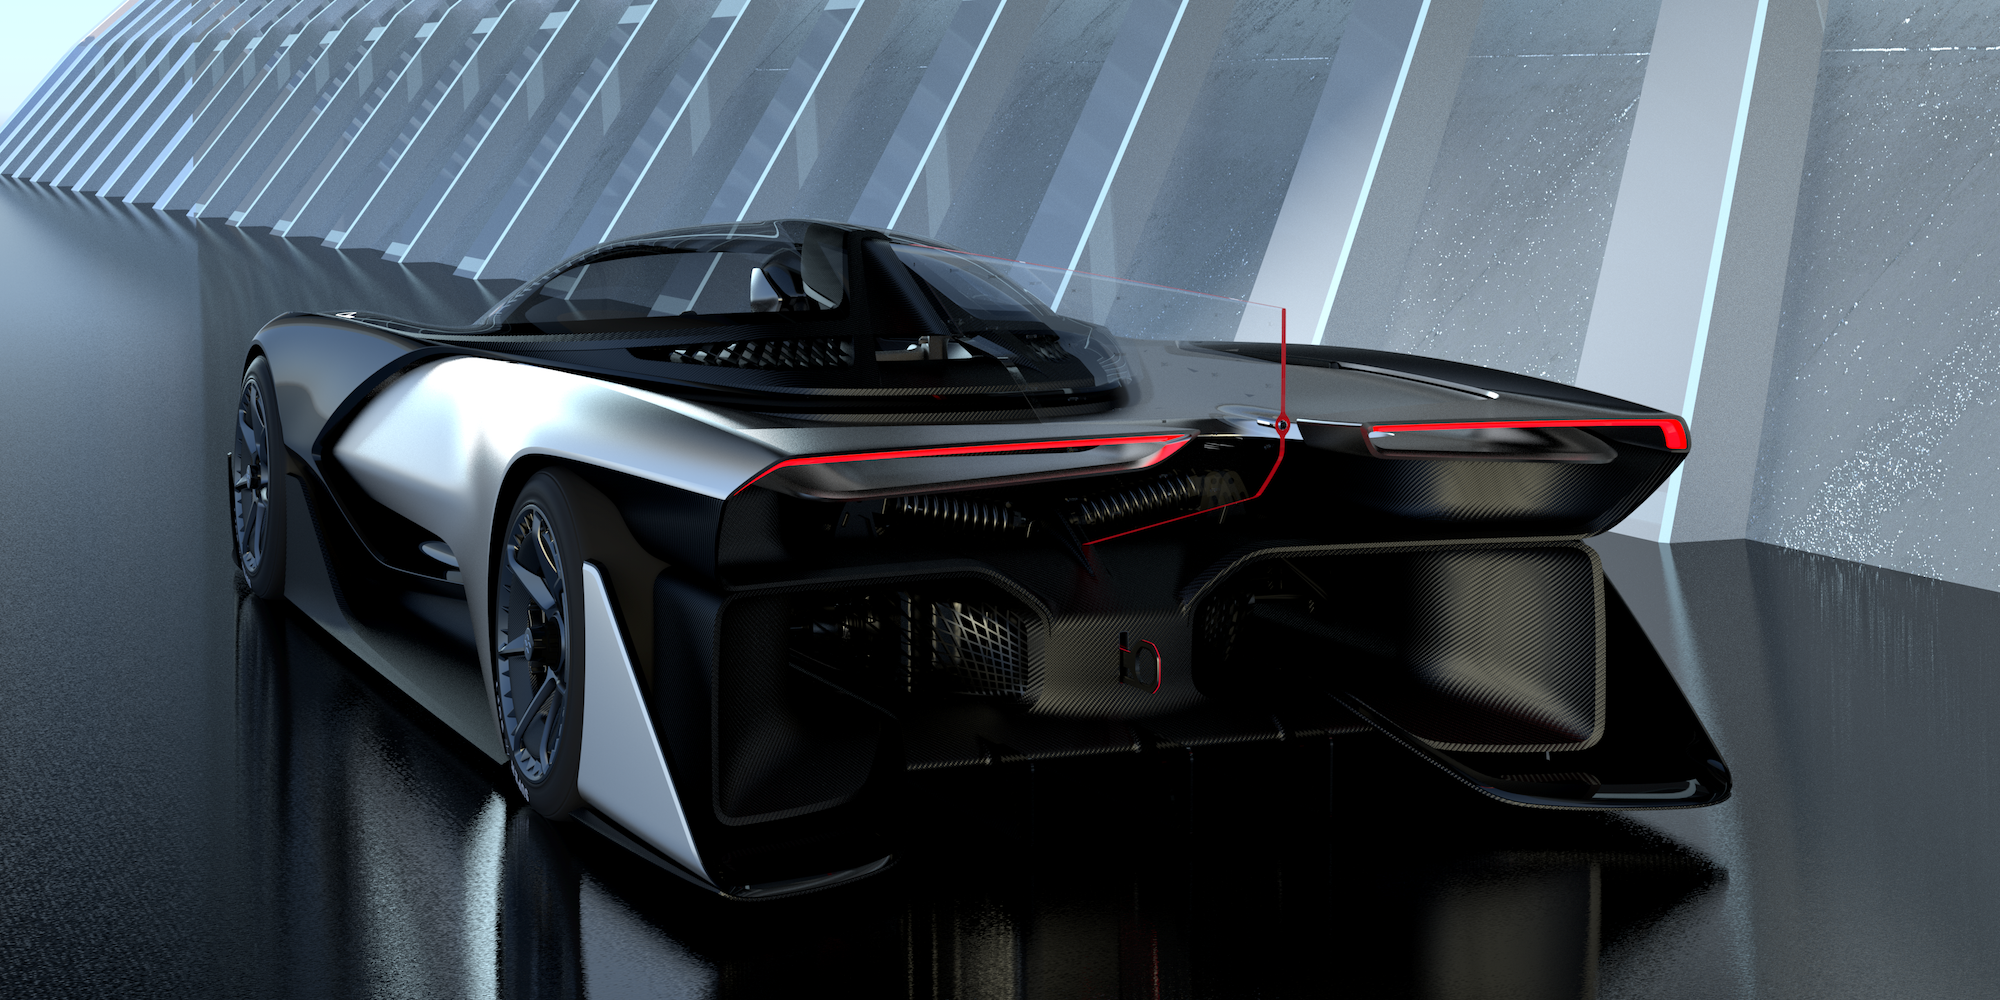 Tesla Rival Faraday Future Just Revealed Its Vision Of The Future Of Cars Faraday Future Concept Cars Supercars Concept